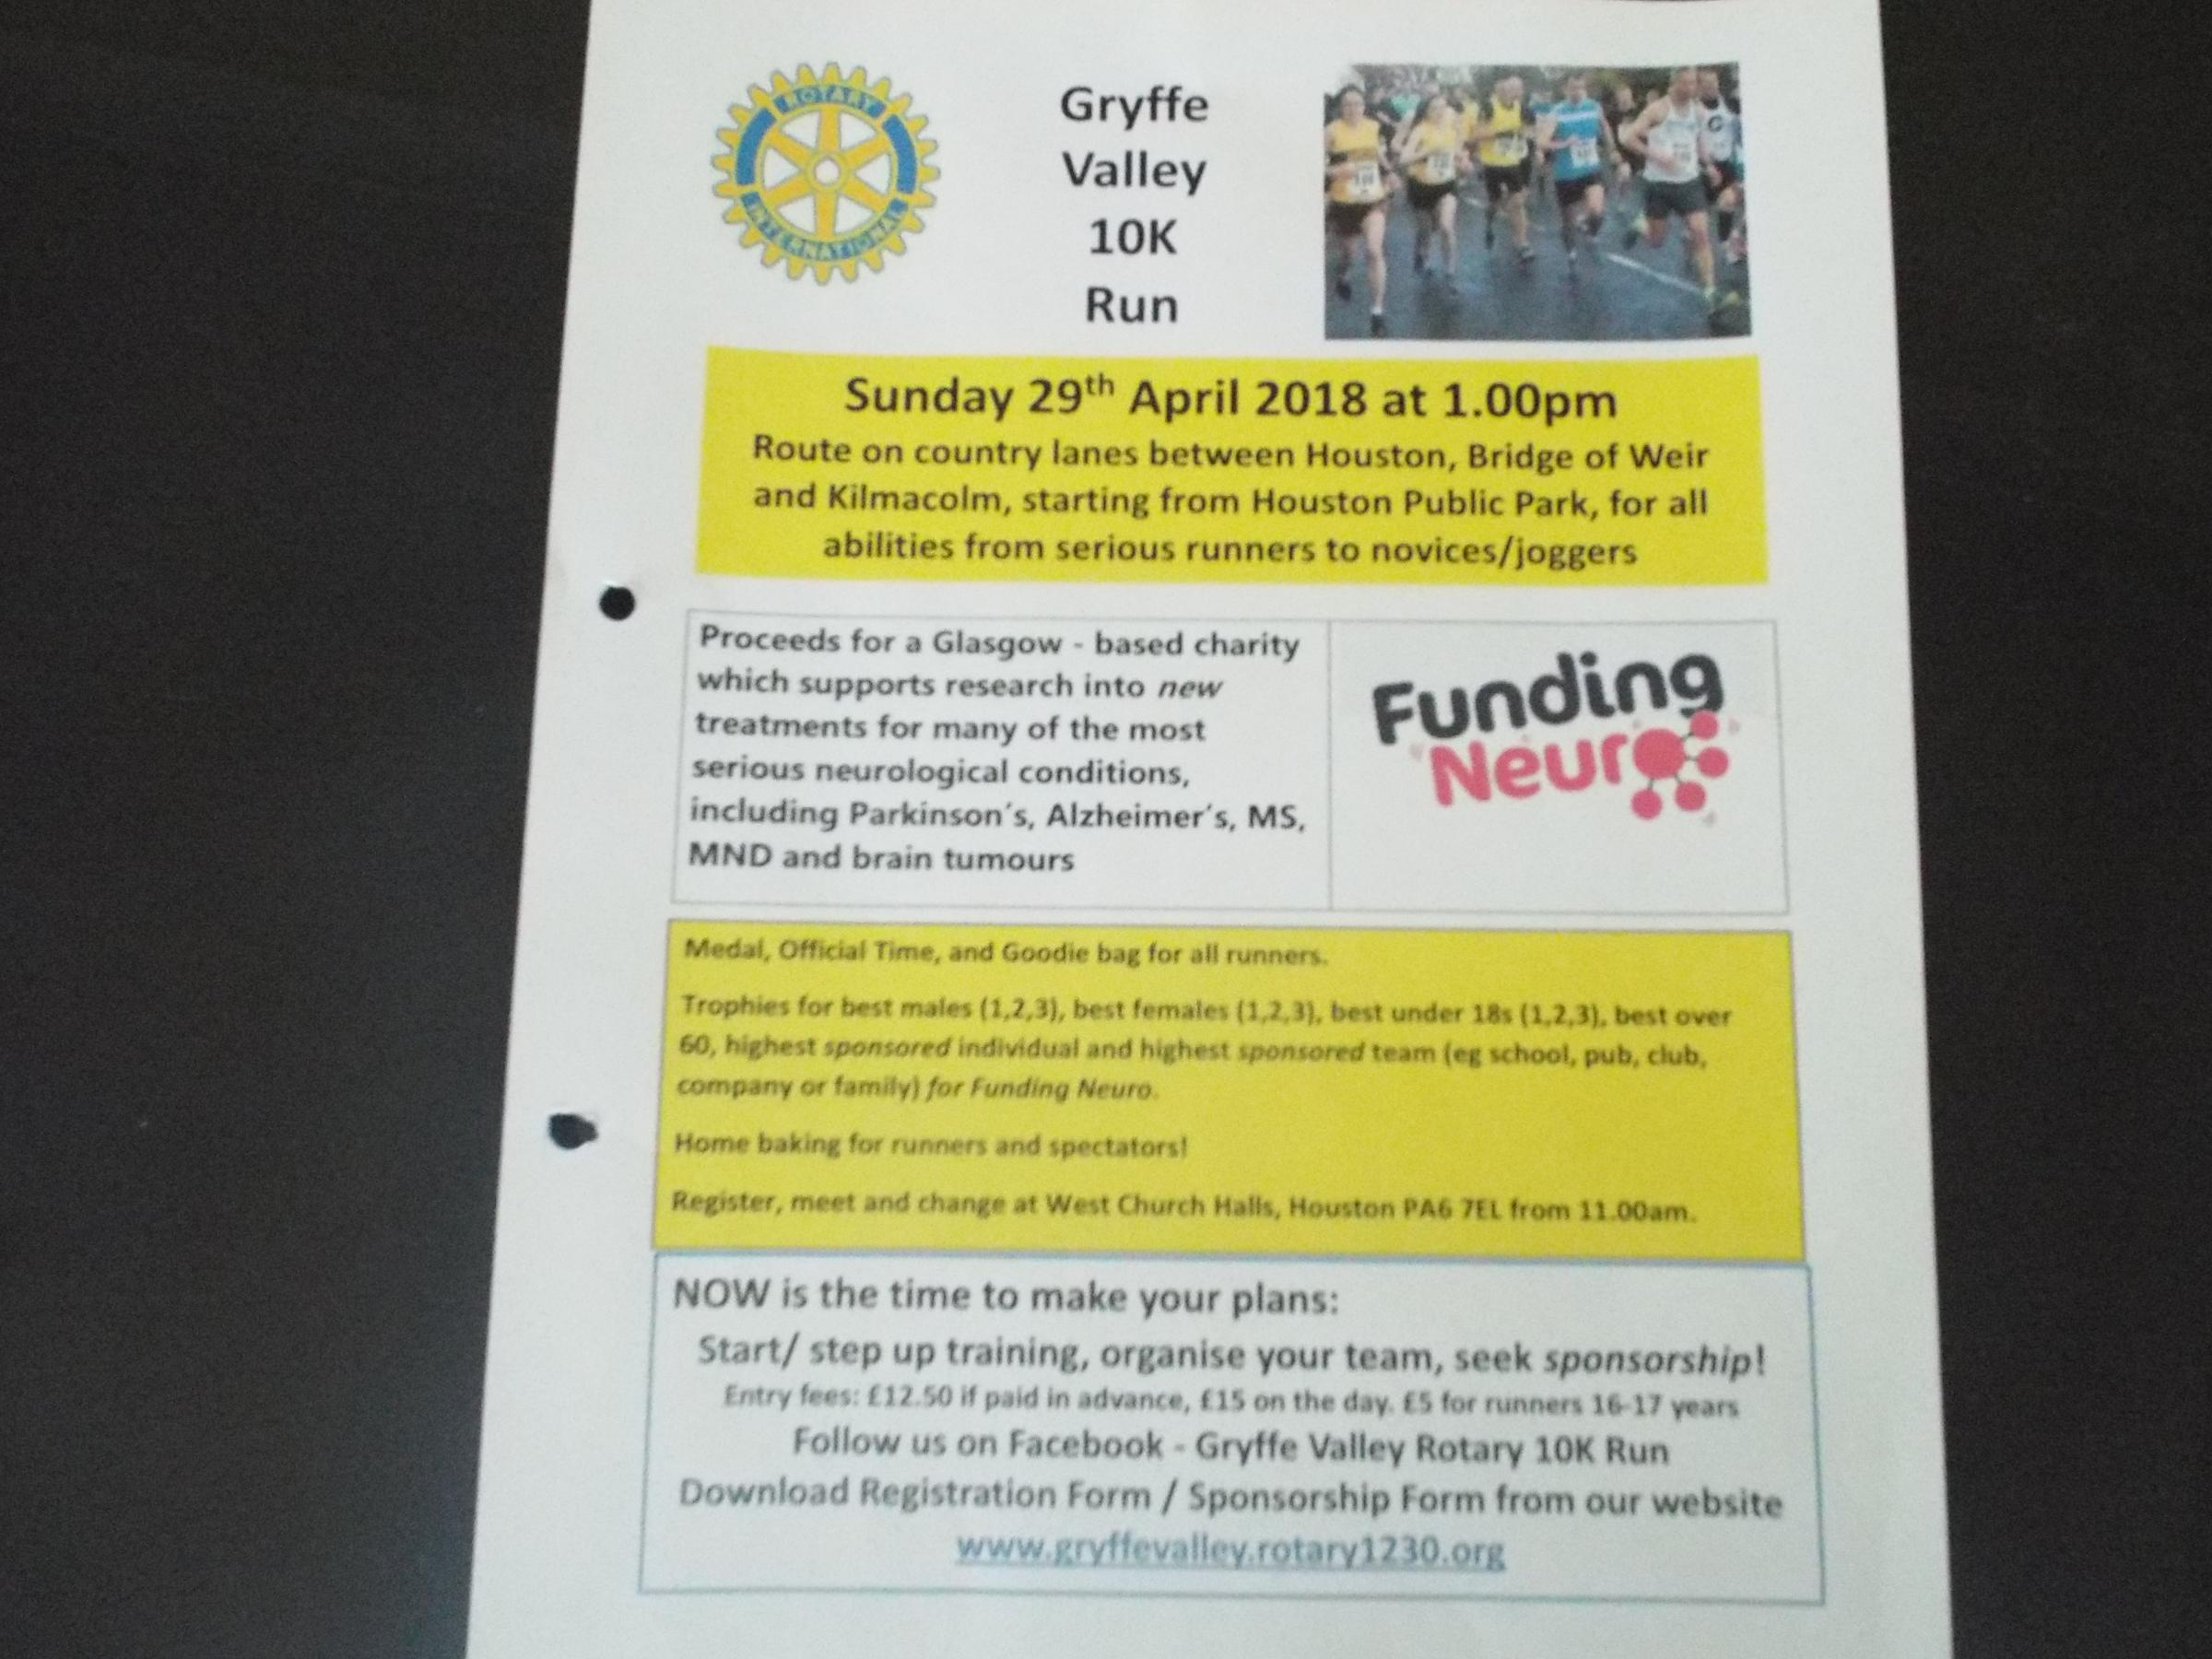 Gryffe Valley 10K Run